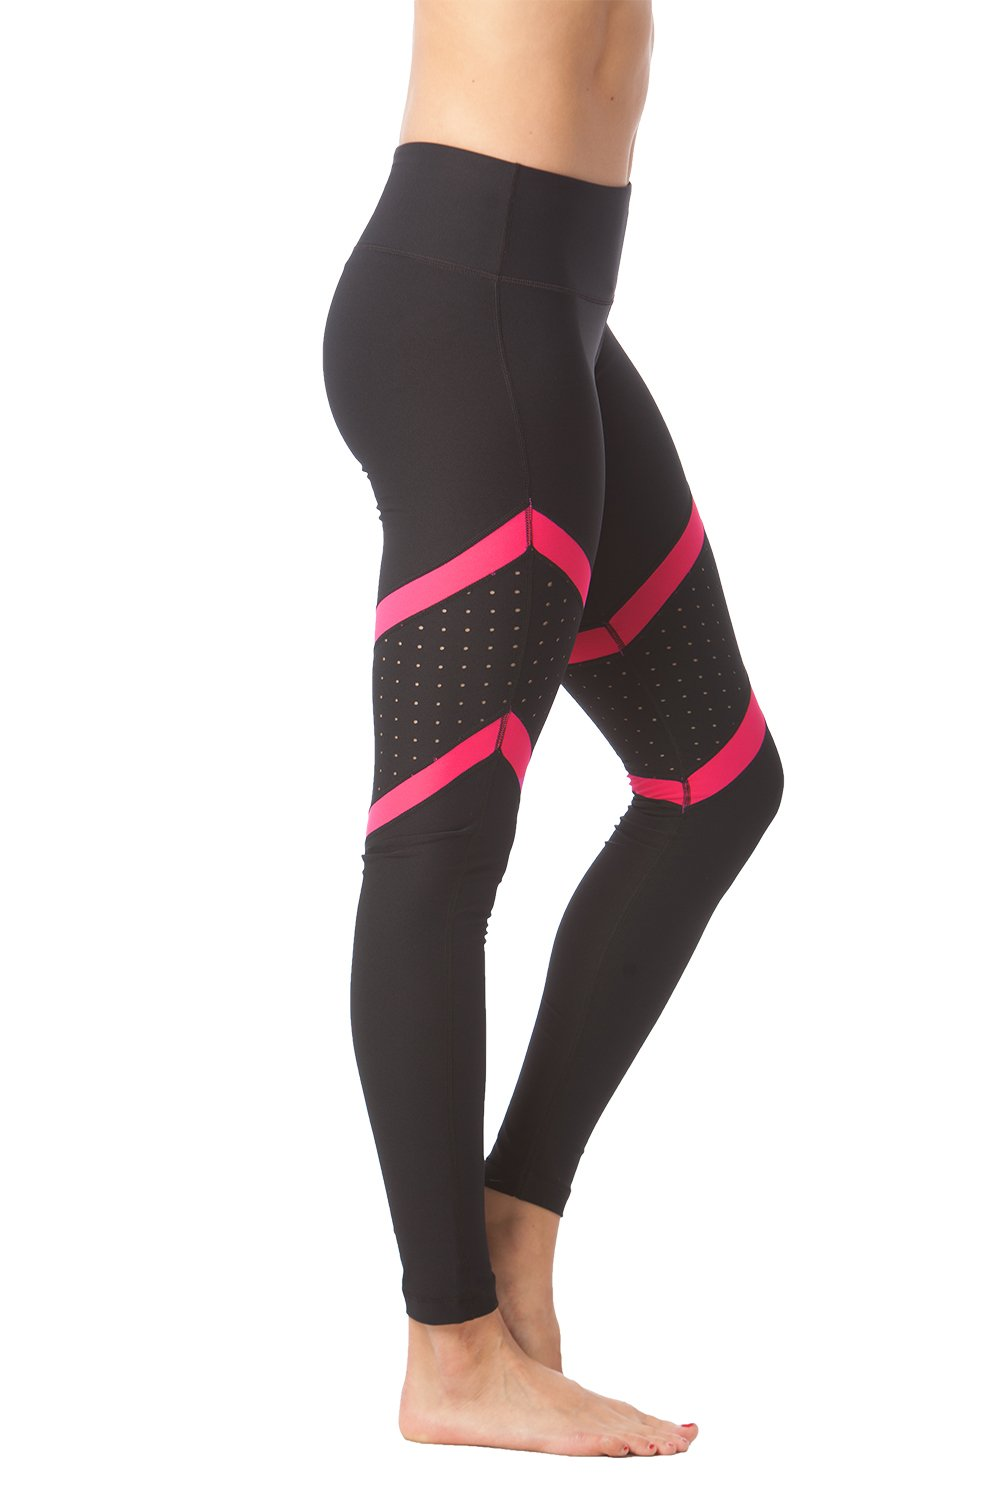 90 Degree By Reflex - Contrast Panels Shimmer Leggings